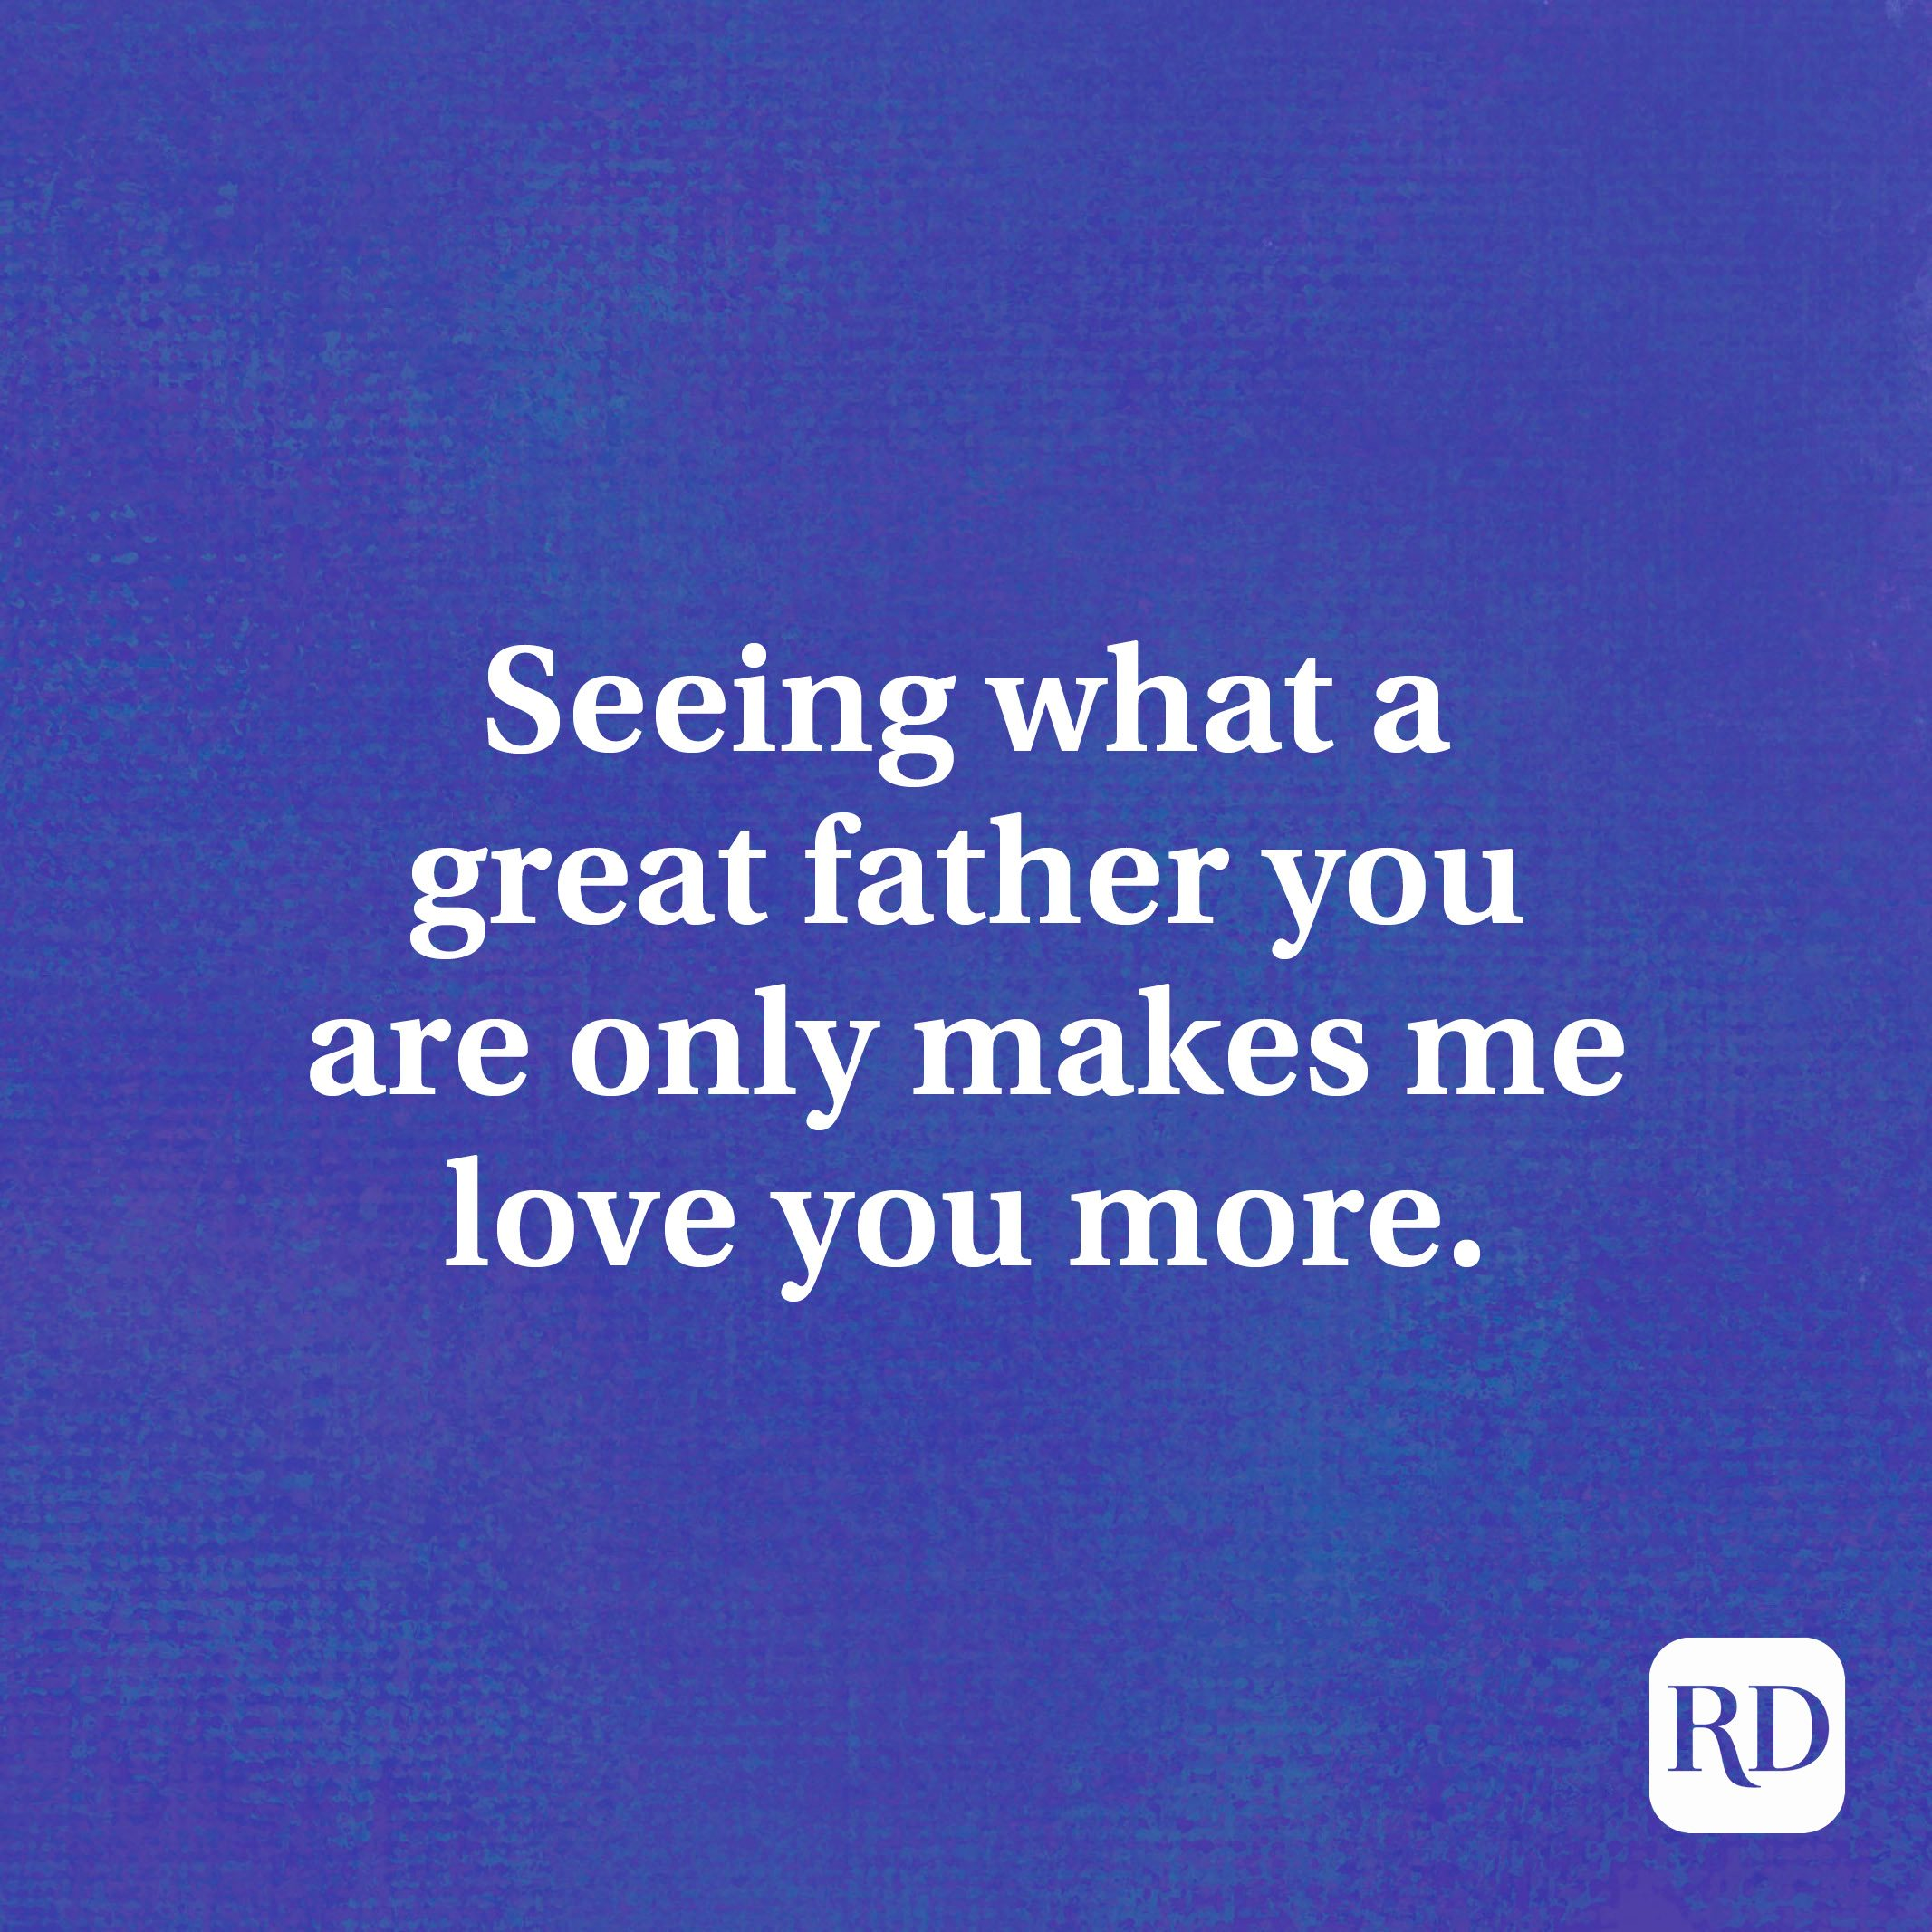 Seeing what a great father you are only makes me love you more.